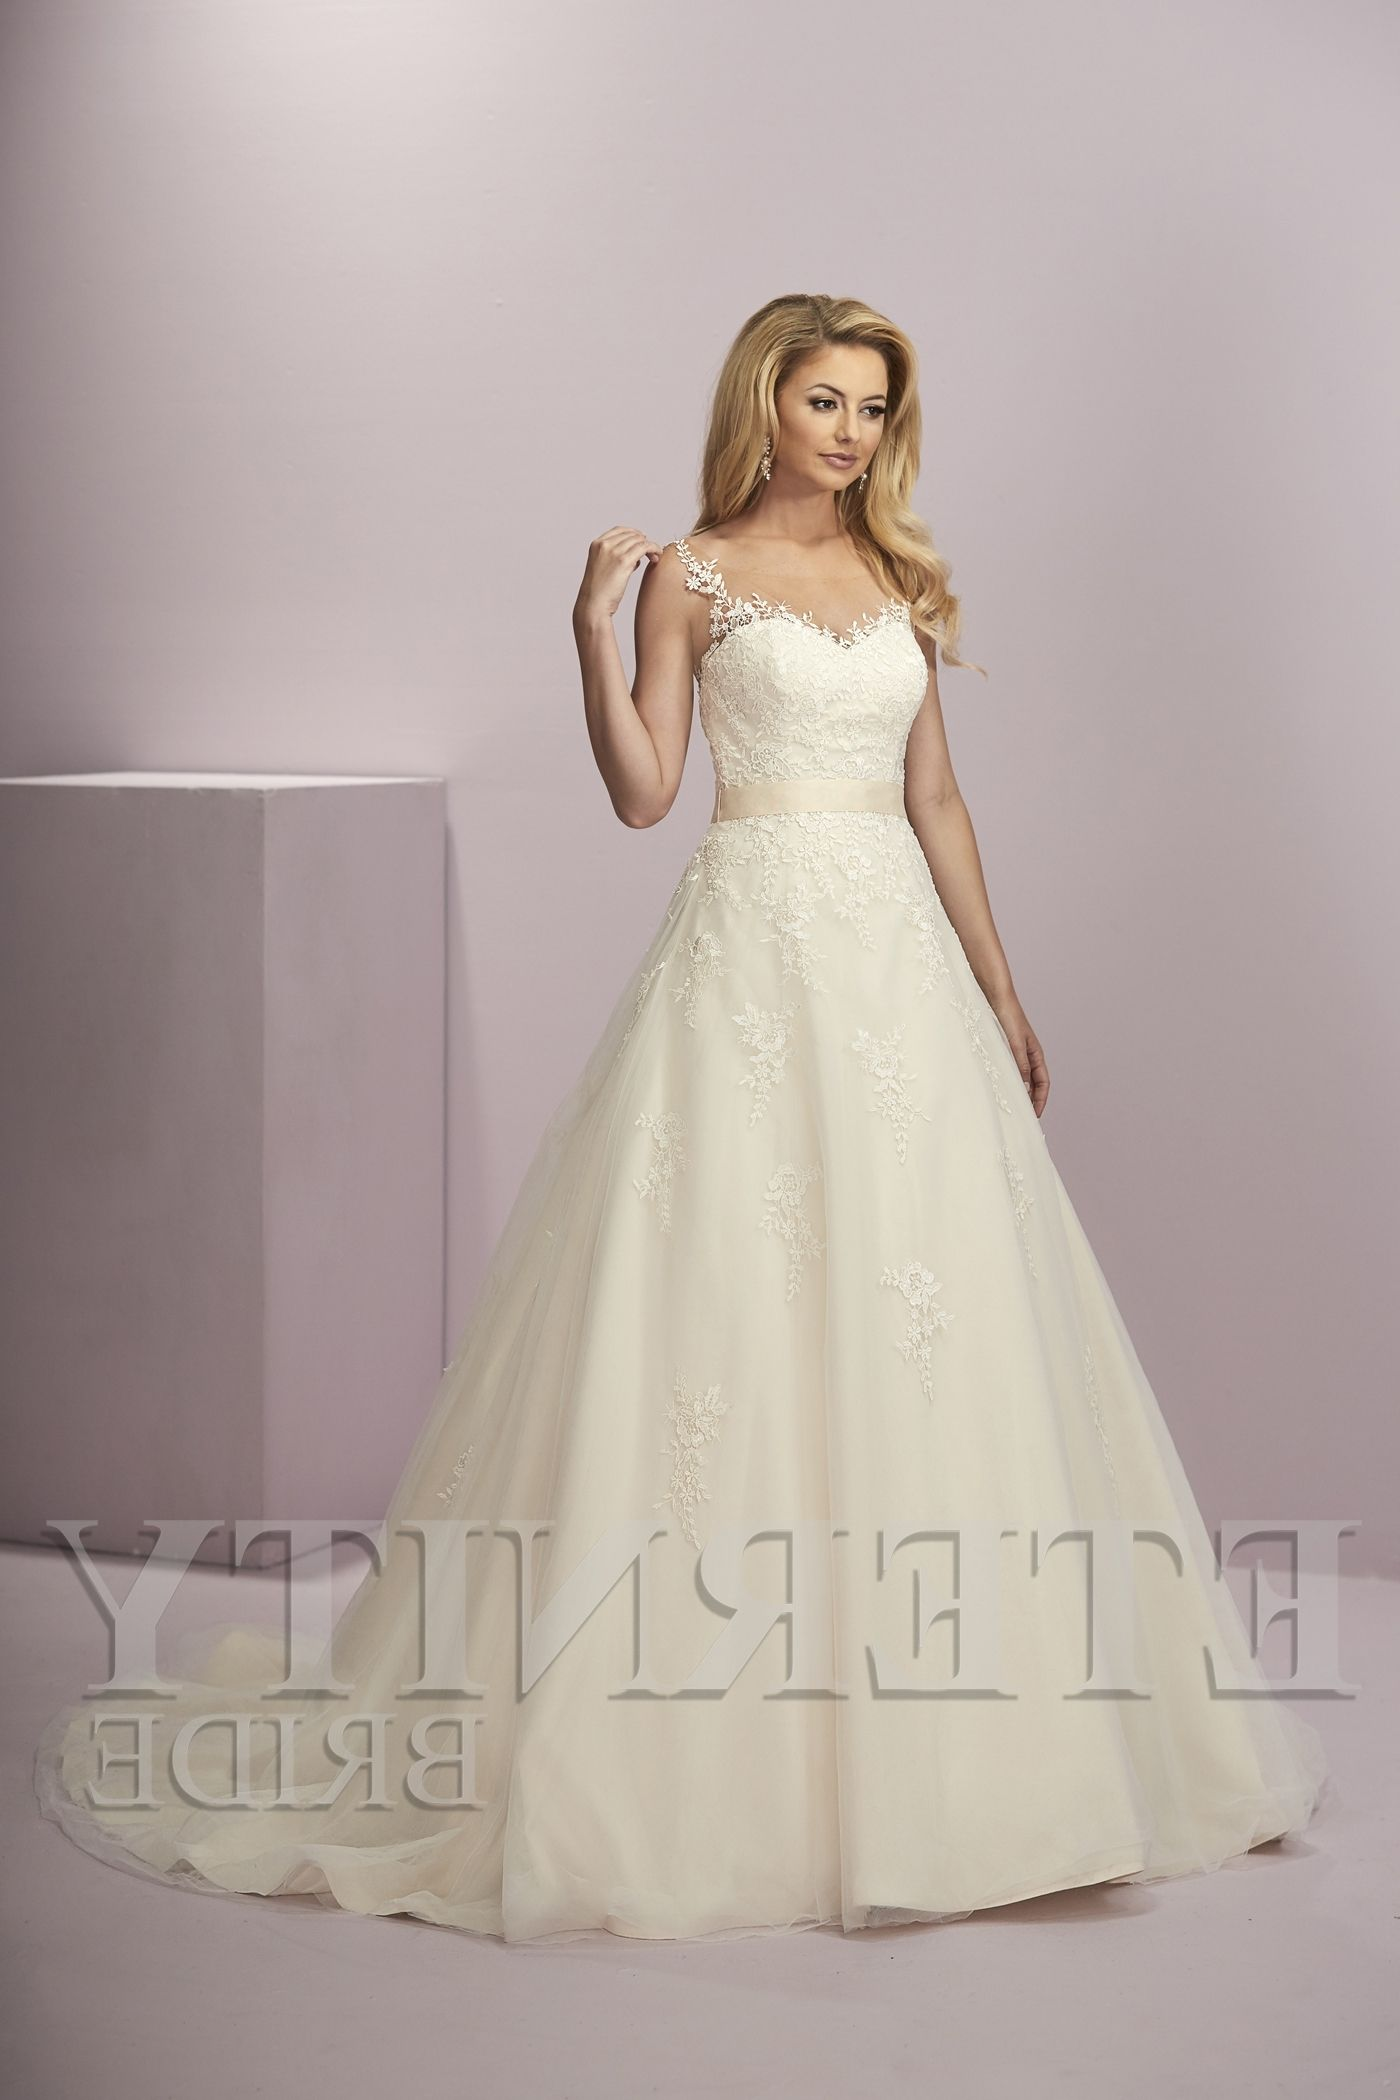 Wedding Dresses Shoes And Accessories In Leeds Dress